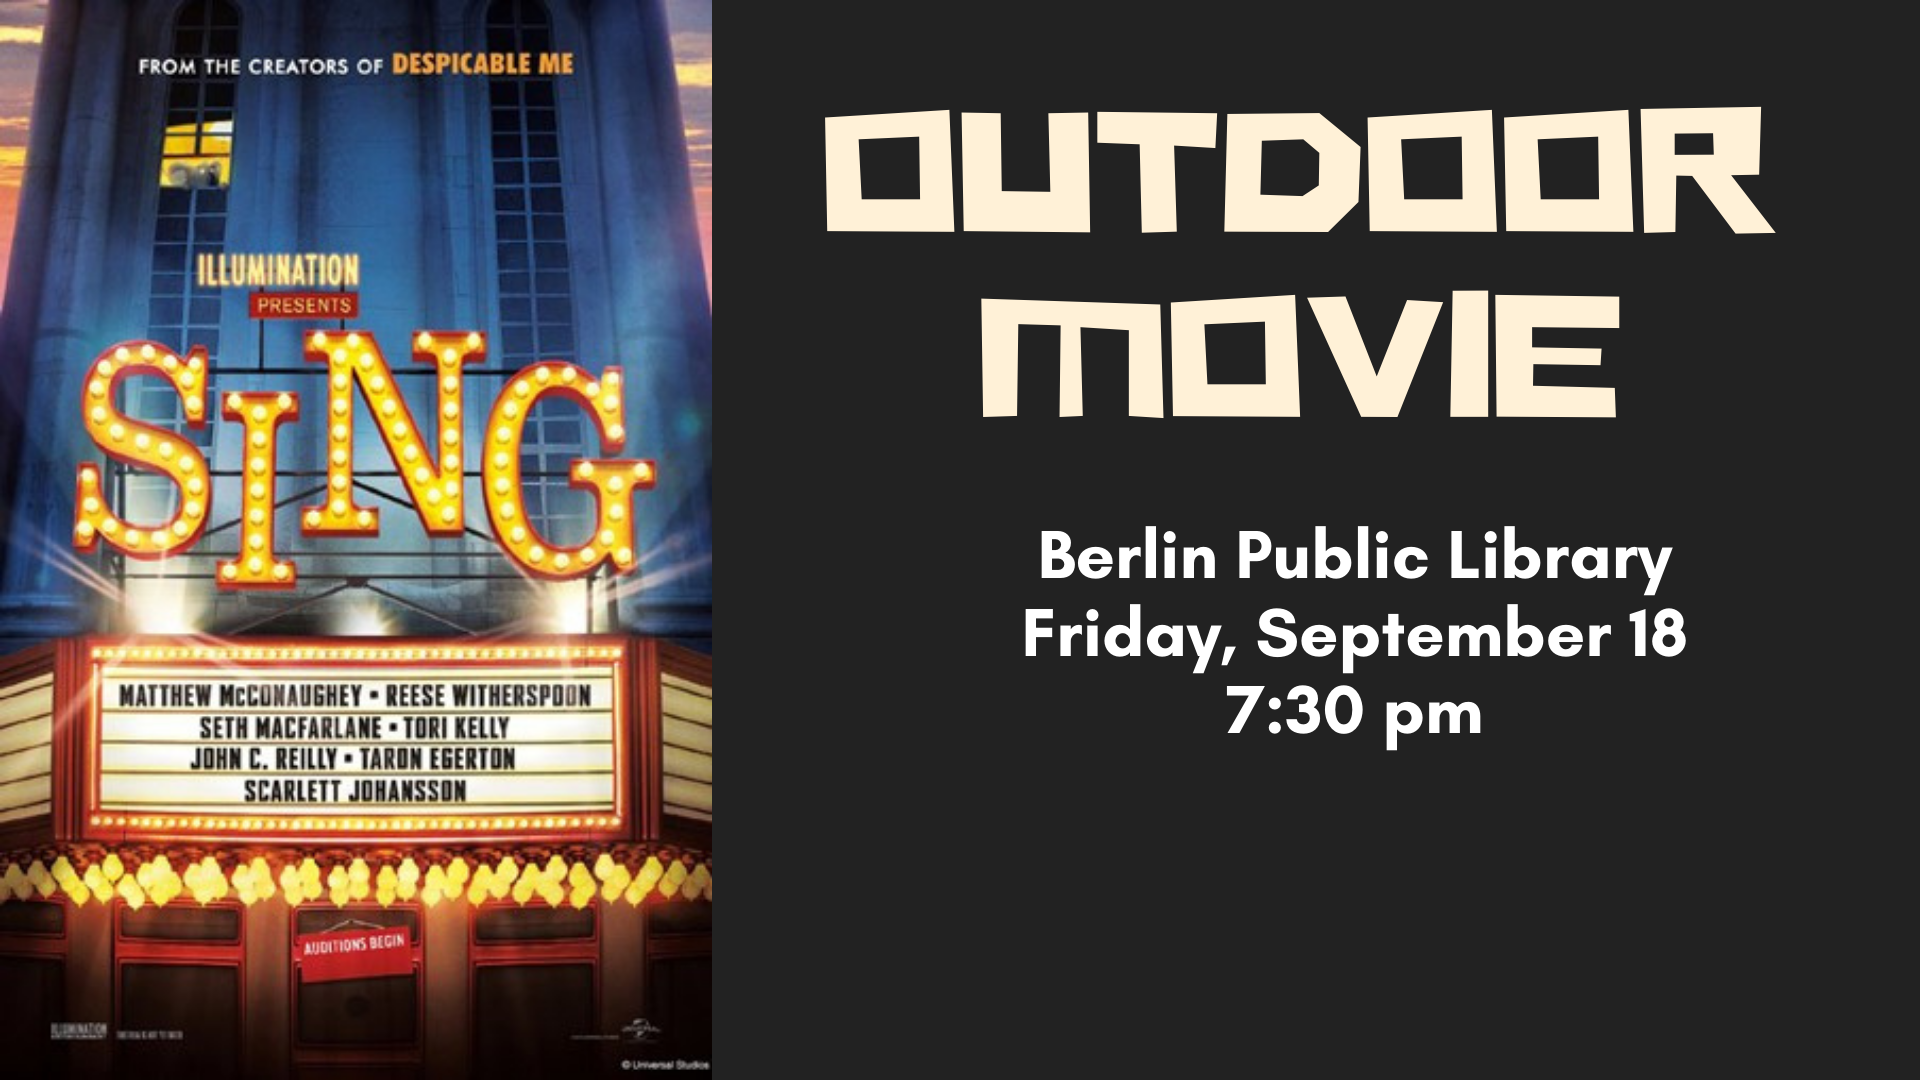 Outdoor Movie - NEW START TIME: 7:30